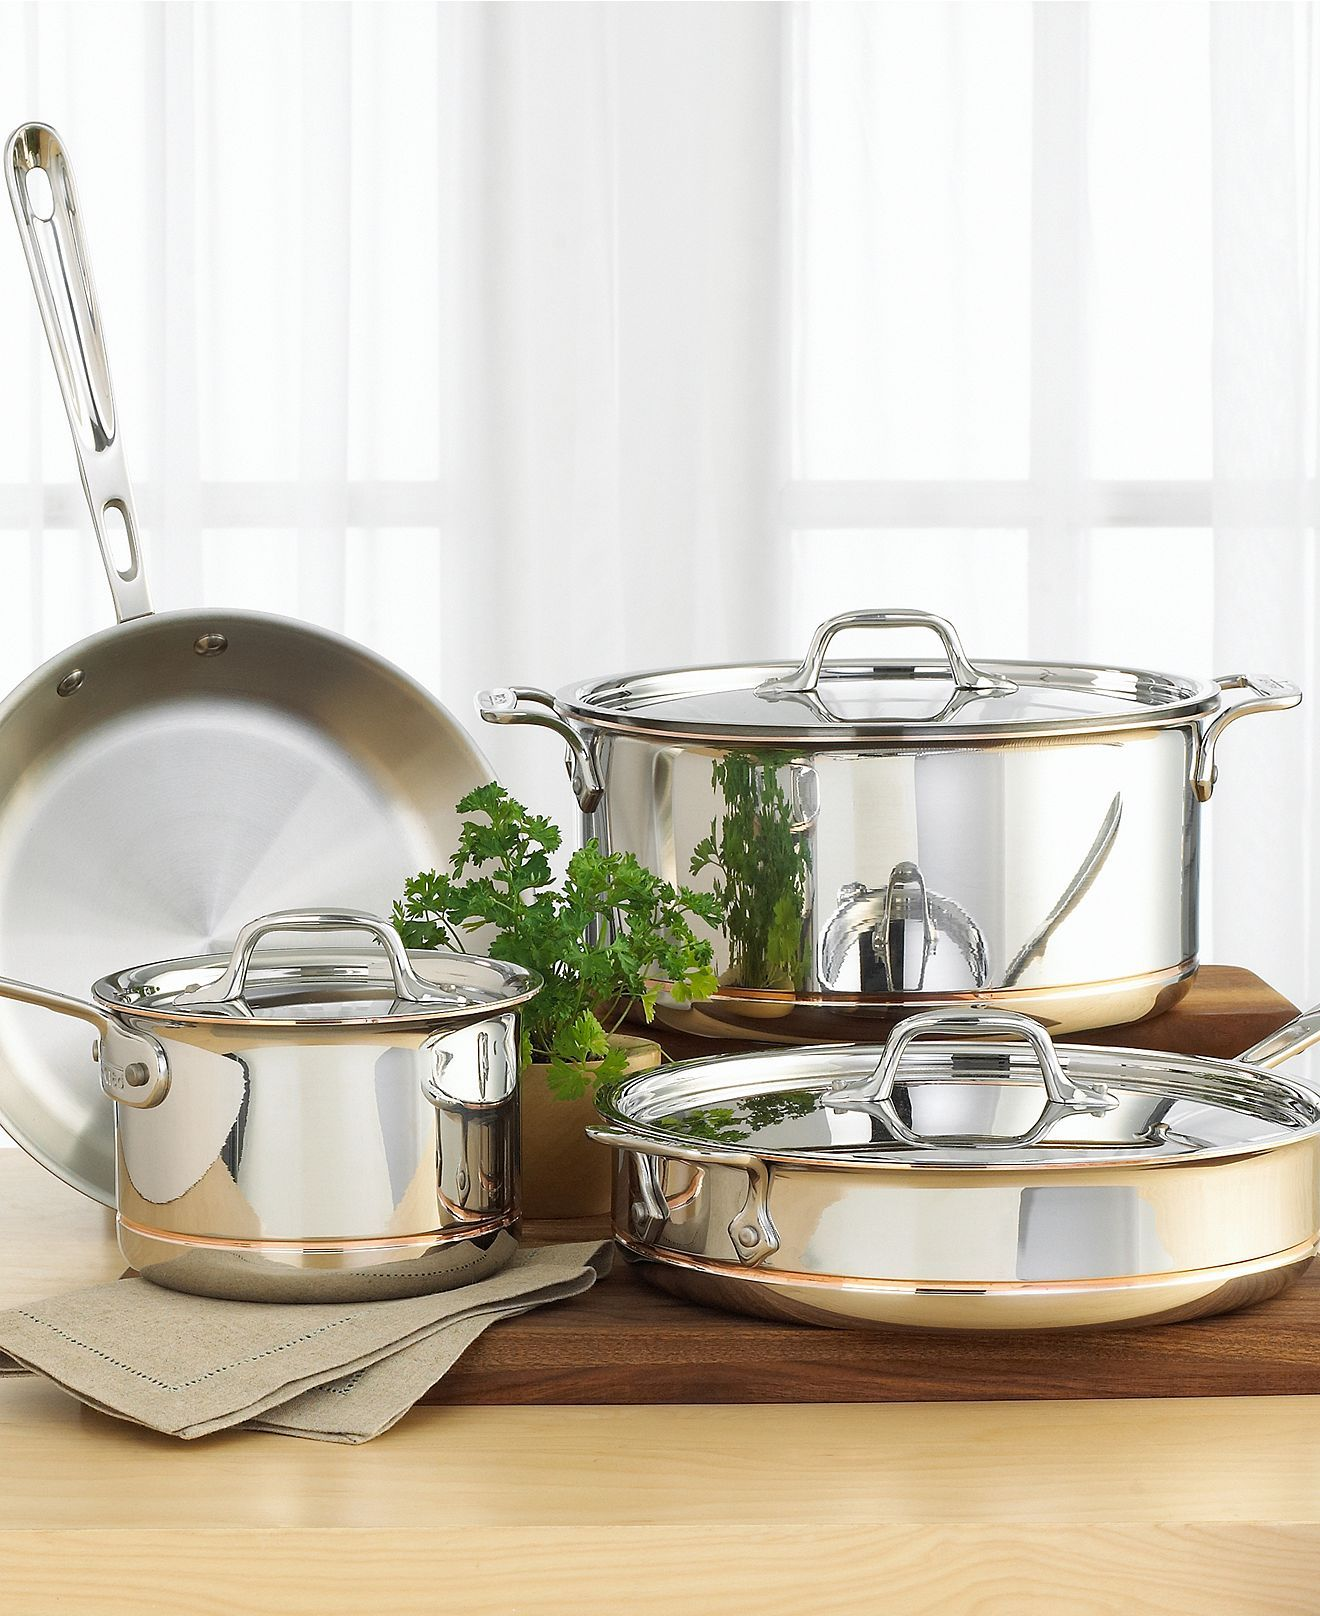 Copper-Core 7 Piece Cookware Set | food styling | Cookware ...